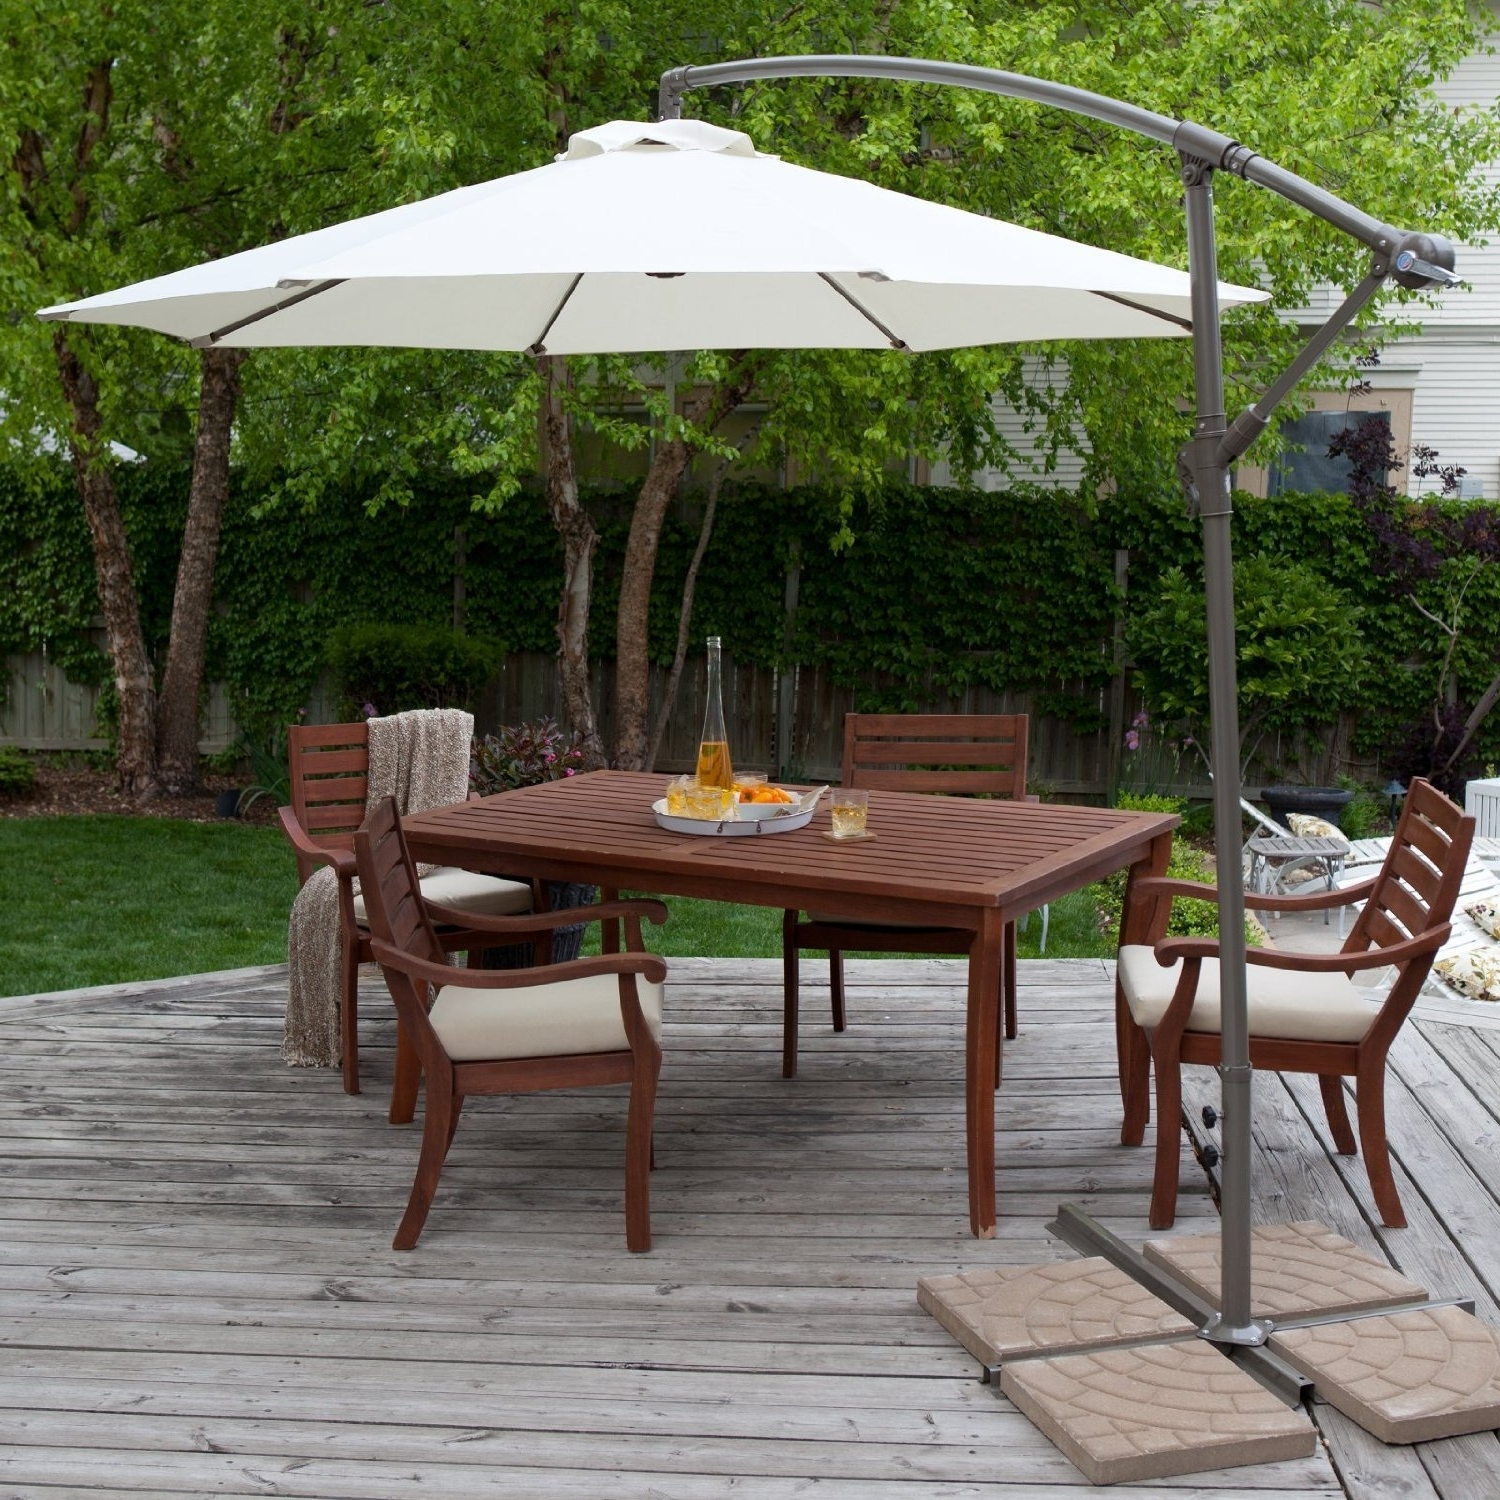 Fashionable Patio & Outdoor: Exciting Cherry Wood Outdoor Dining Set With Best With Regard To Patio Dining Umbrellas (View 3 of 20)